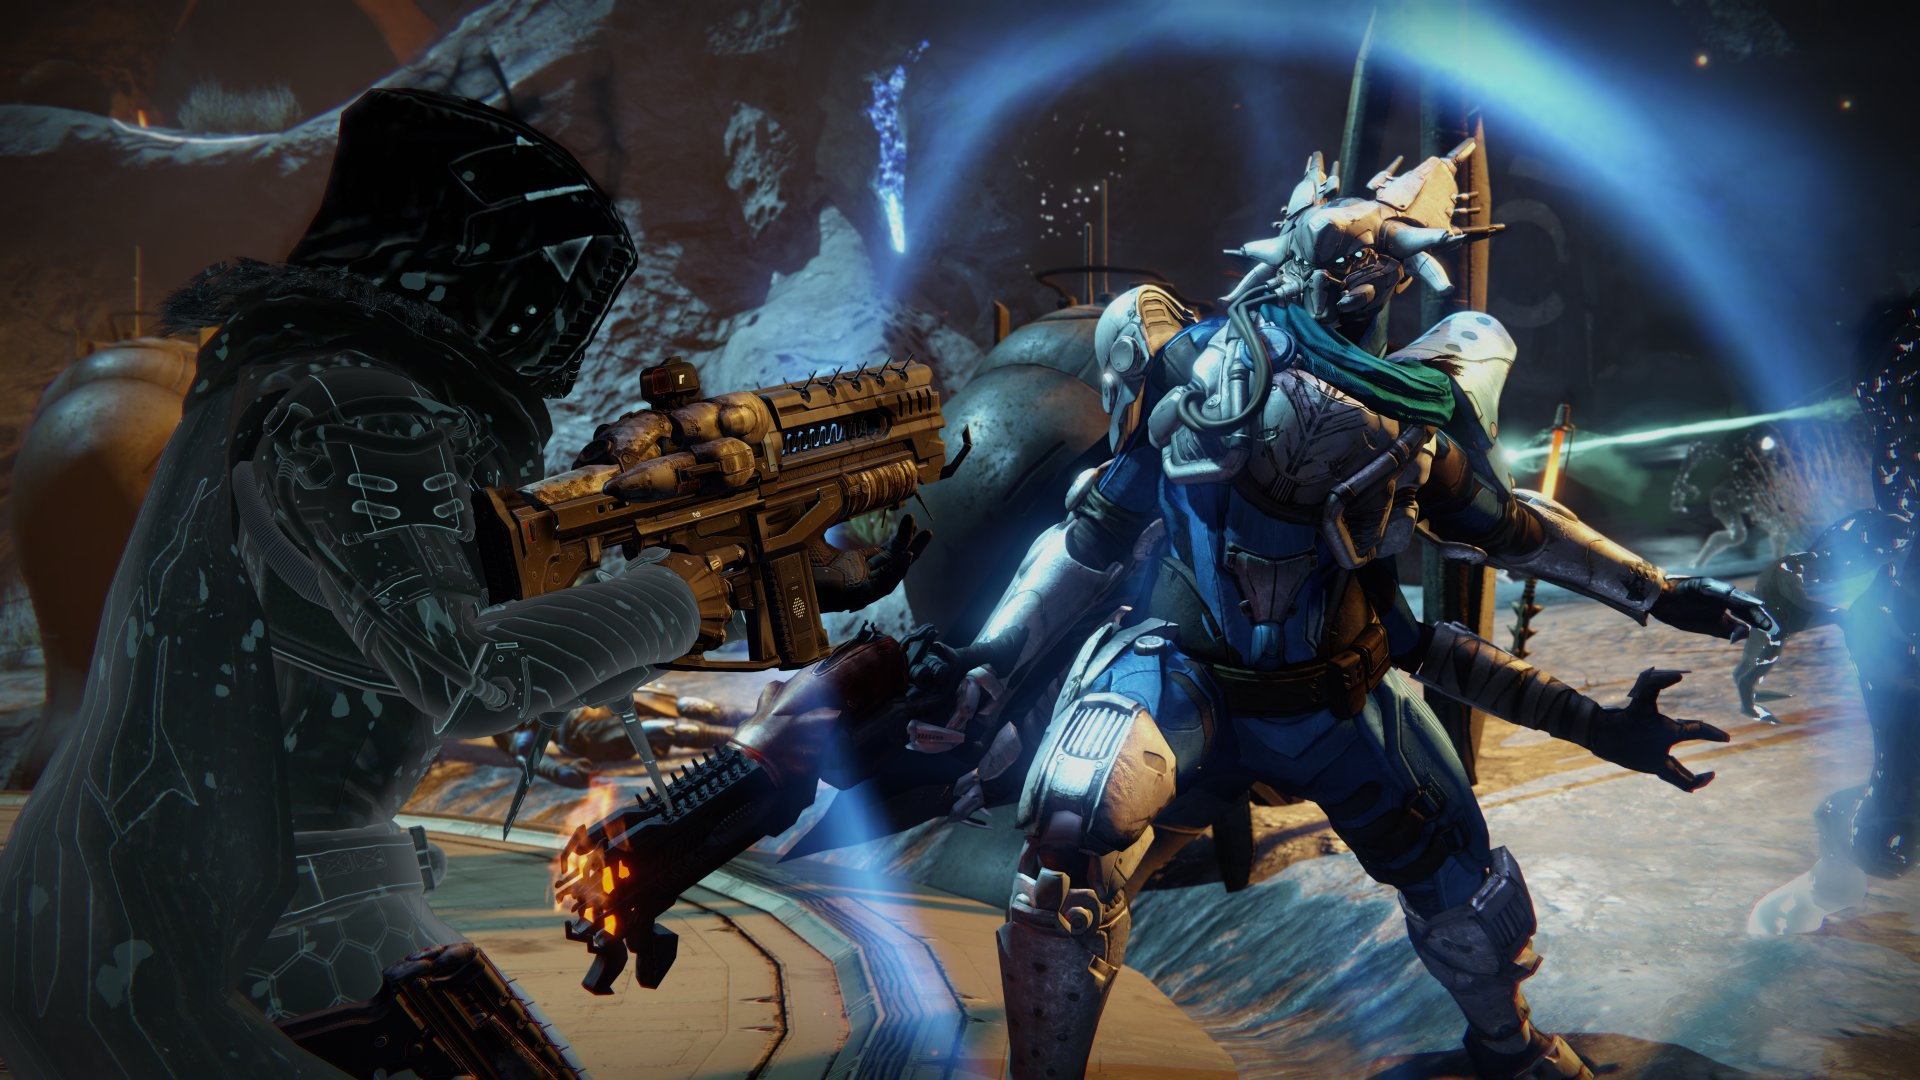 Destiny April update: here's a look at the new Strikes ...